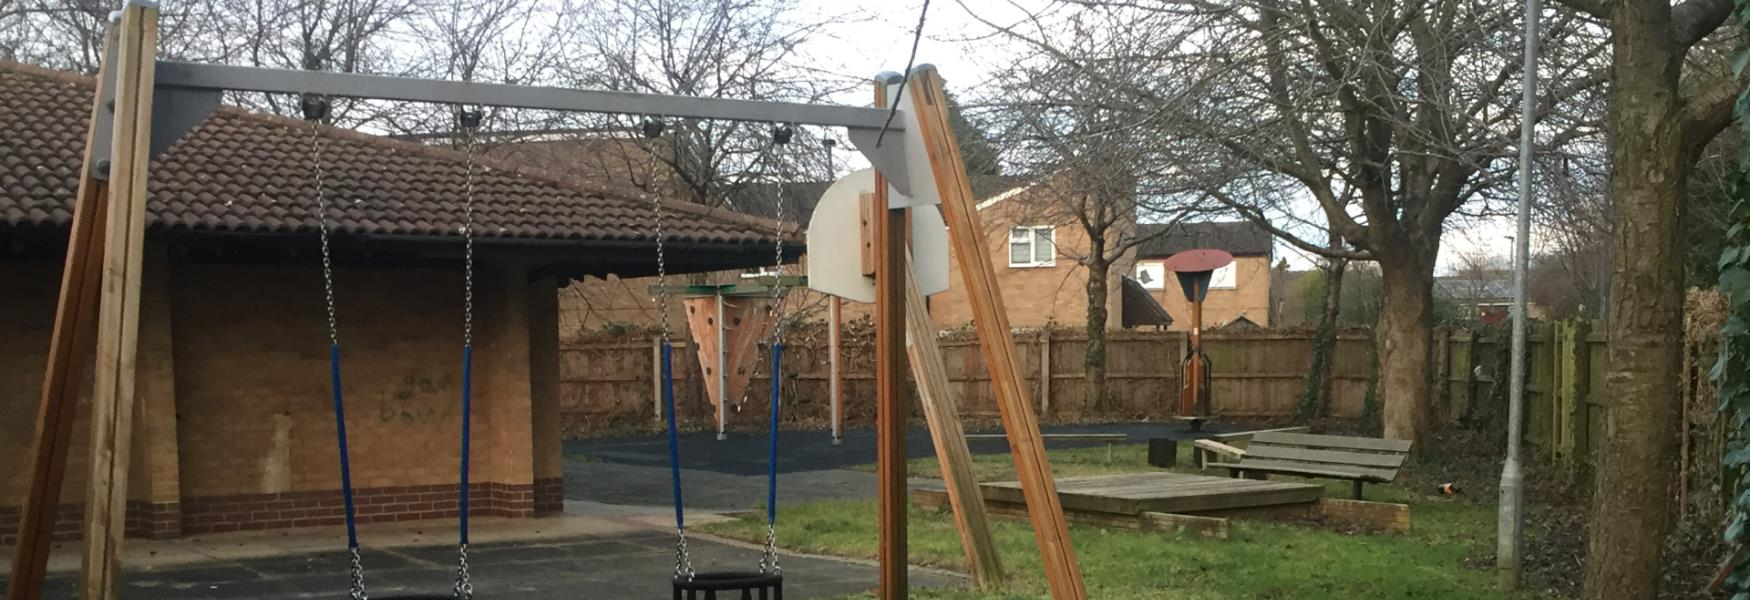 Copeland Community Centre playground